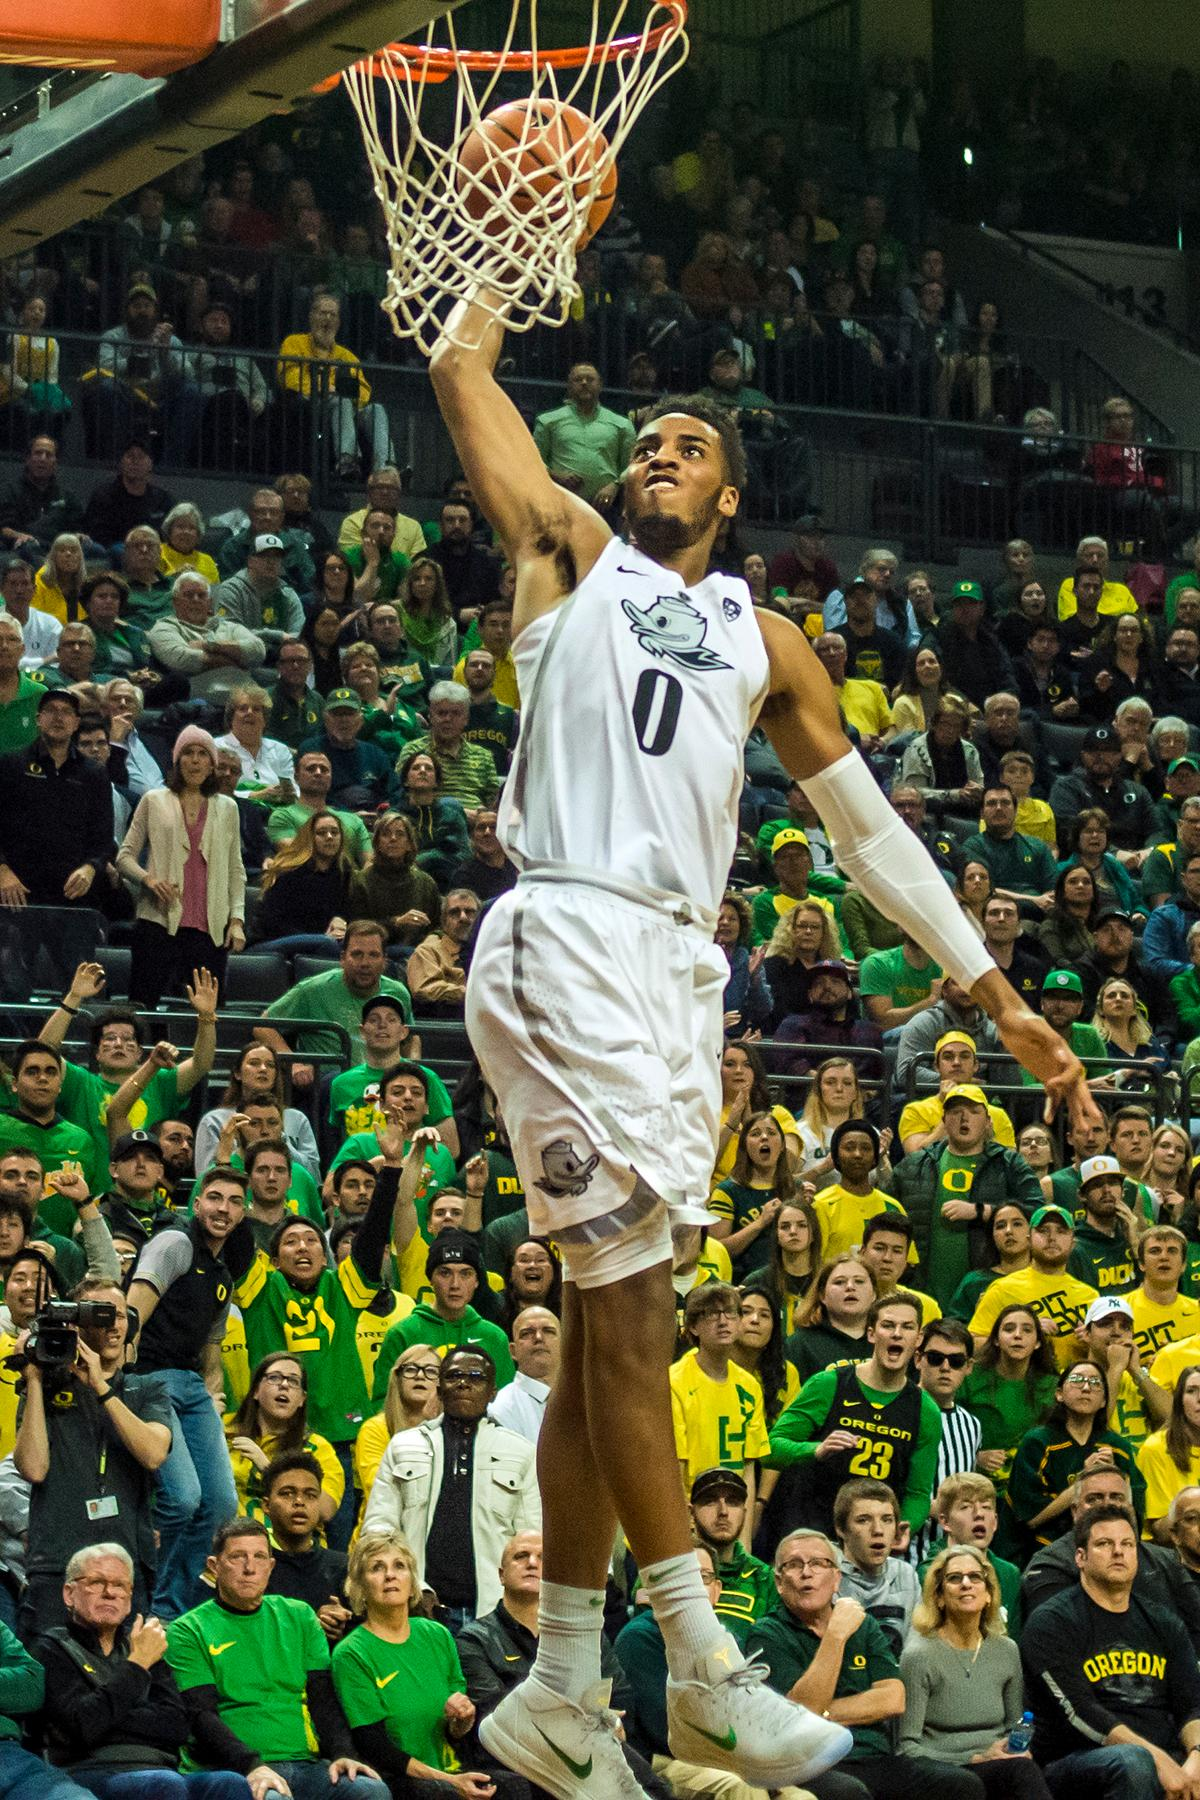 Oregon's Kenny Wooten goes up for a dunk in their matchup against the Arizona Wildcats at Matthew Knight Arena Saturday. The Ducks upset the fourteenth ranked Wildcats 98-93 in a stunning overtime win in front of a packed house of over 12,000 fans for their final home game to improve to a 19-10 (9-7 PAC-12) record on the season. Oregon will finish out regular season play on the road in Washington next week against Washington State on Thursday, then Washington on the following Saturday. (Photo by Colin Houck)